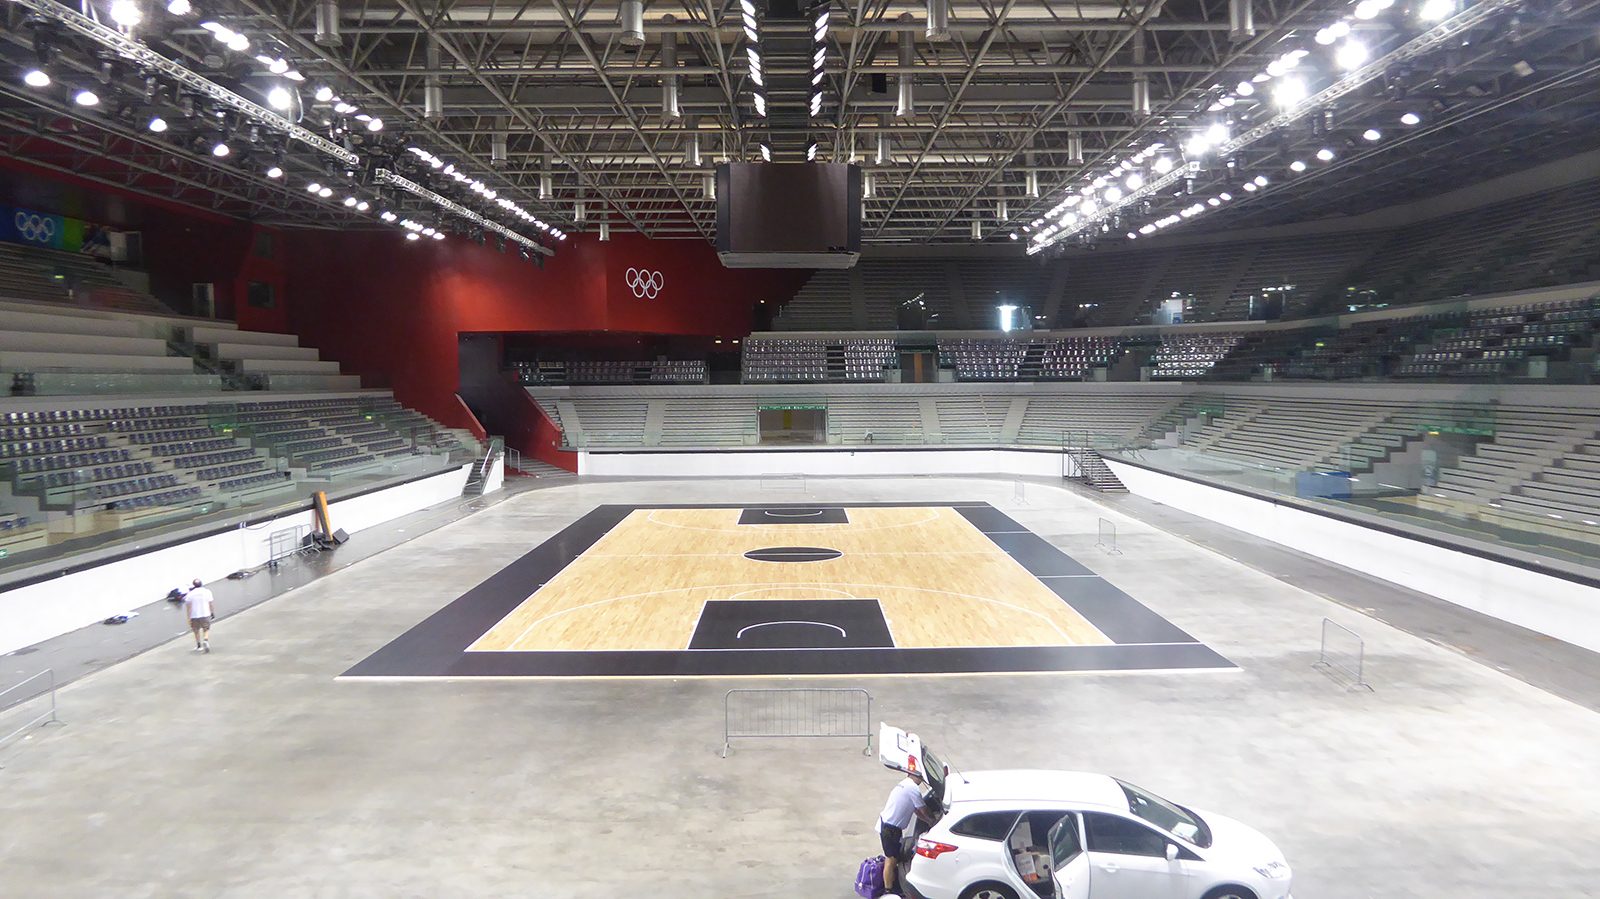 Another parquet designed by Dalla Riva for Serie A and Eurocup